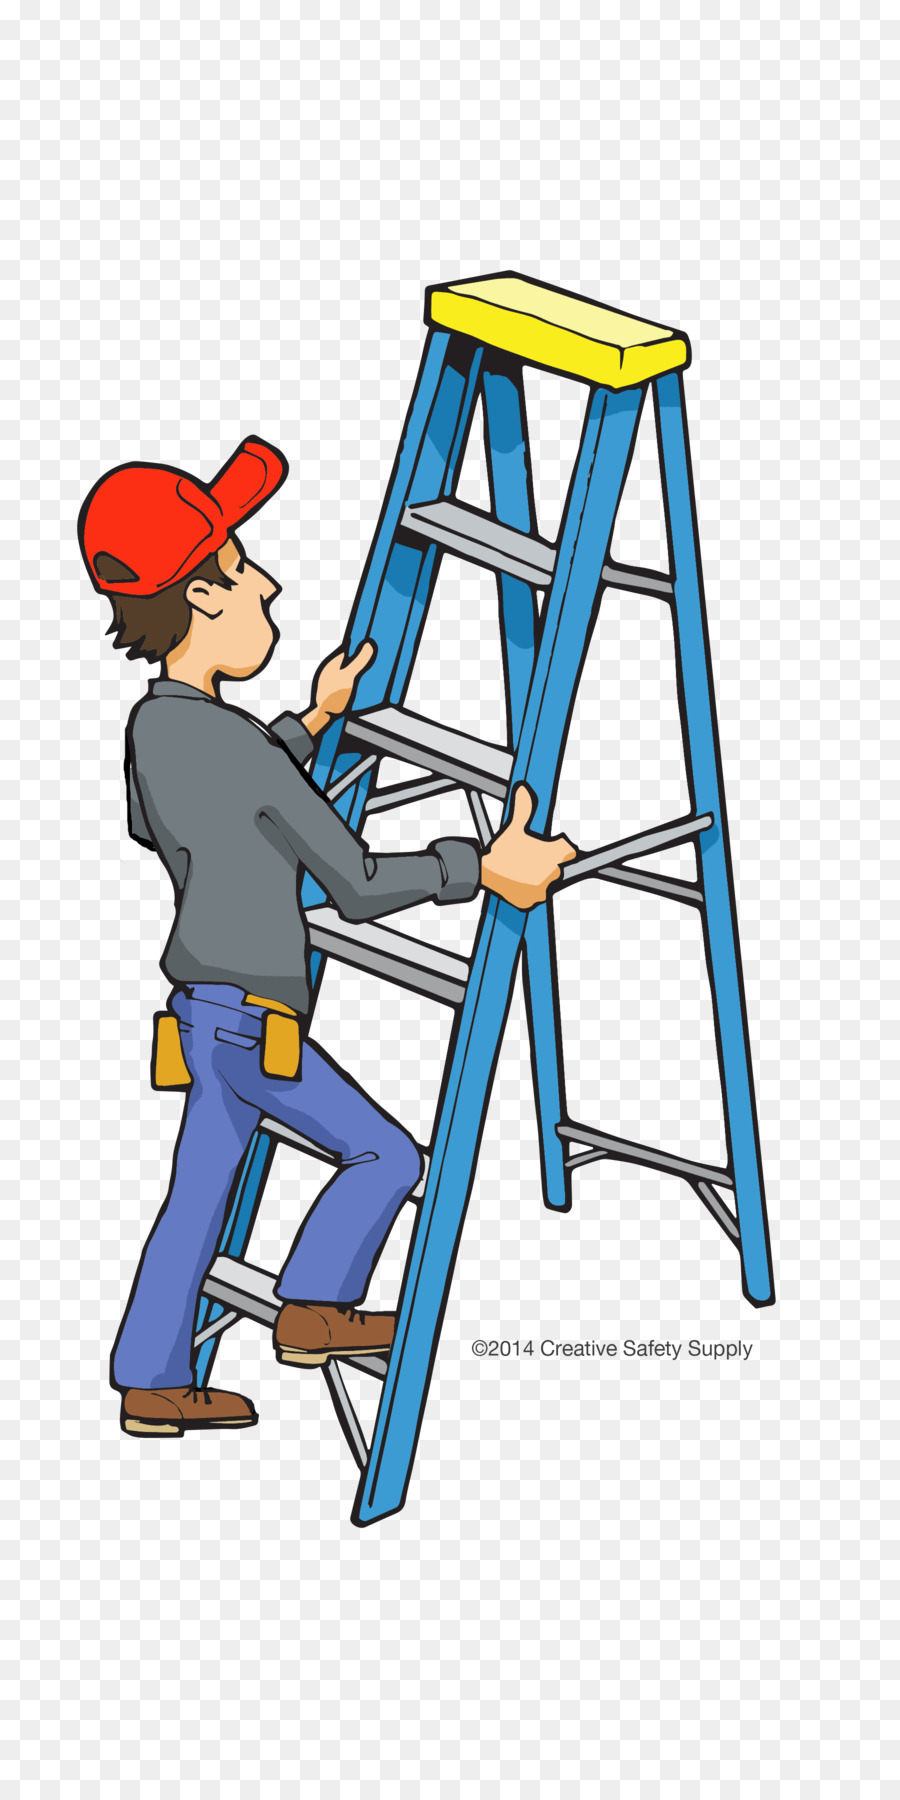 hight resolution of fall protection and ladder safety clipart falling safety clip art